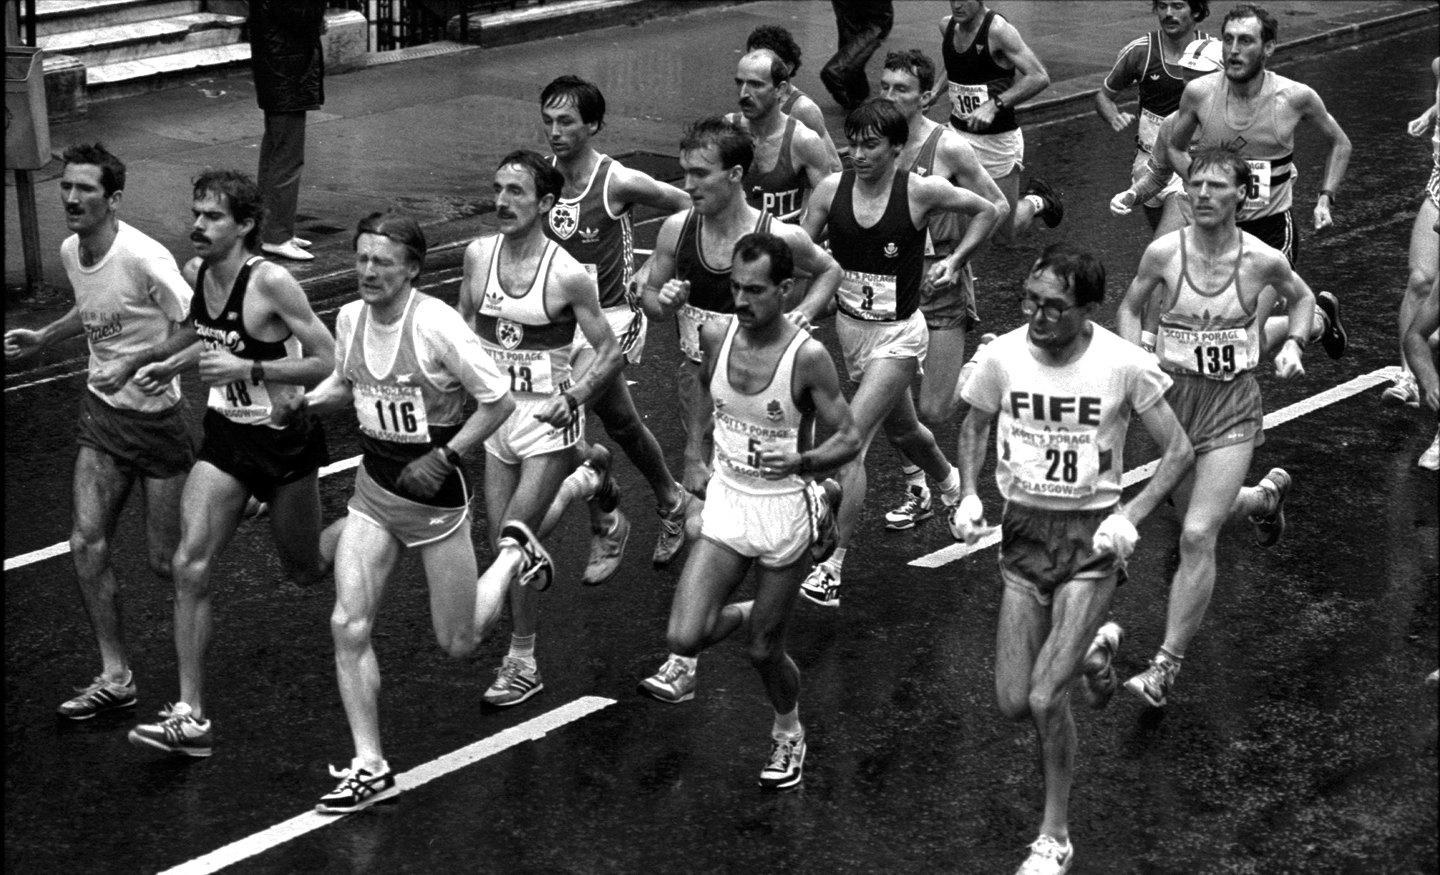 Glasgow Marathon 1985. photo - g macindoe